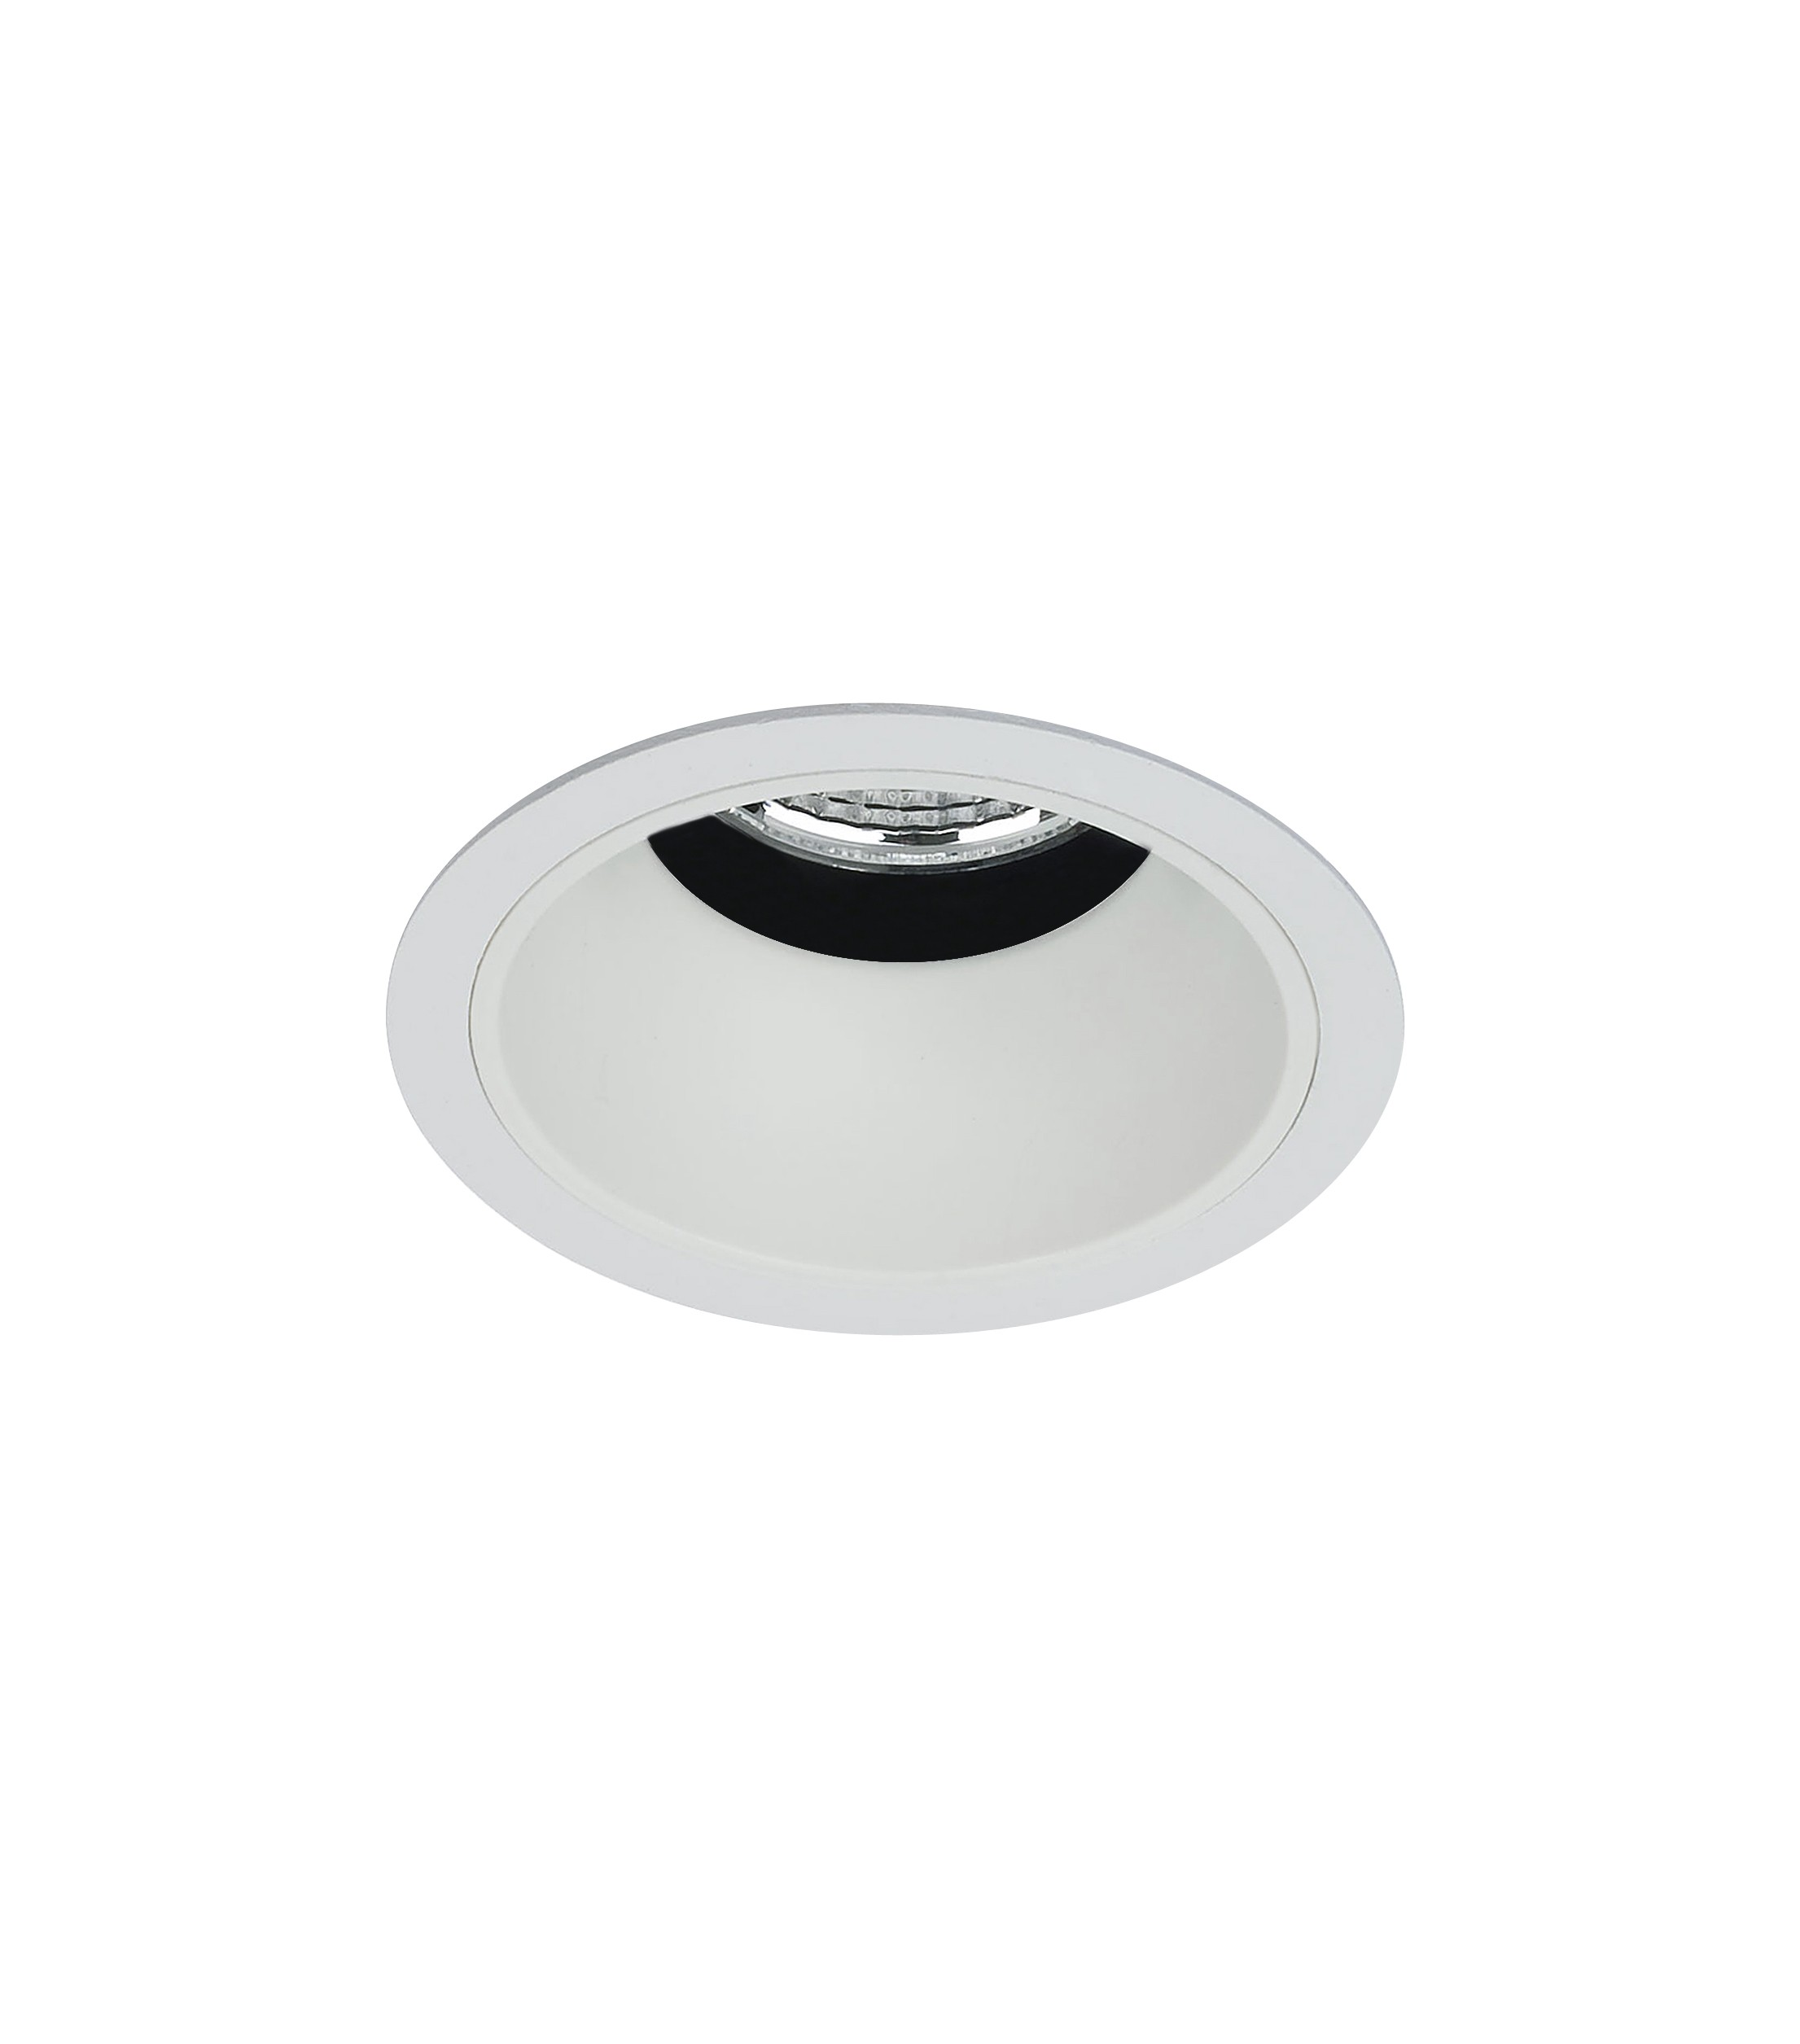 """2.5"""" Precision 1000lm/1400lm Round Flanged Fixed Downlight"""